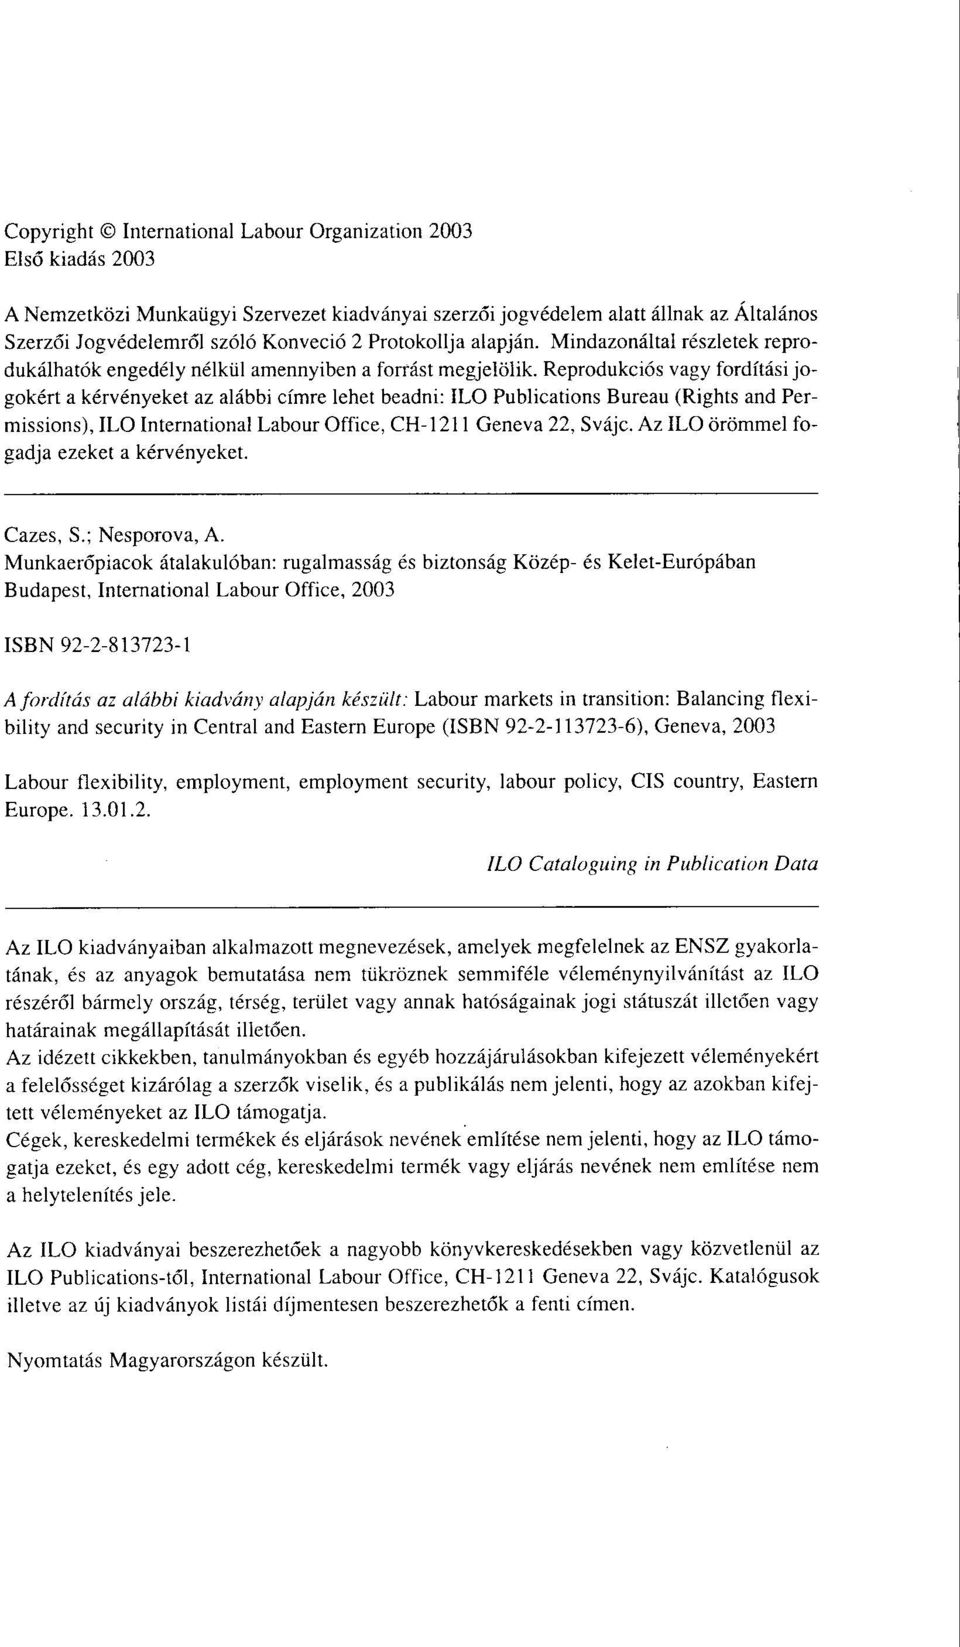 Reprodukciós vagy fordítási jogokért a kérvényeket az alábbi címre lebet beadni: ILO Publications Bureau (Rights and Permissions), ILO International Labour Office, CH-1211 Geneva 22, Svájc.